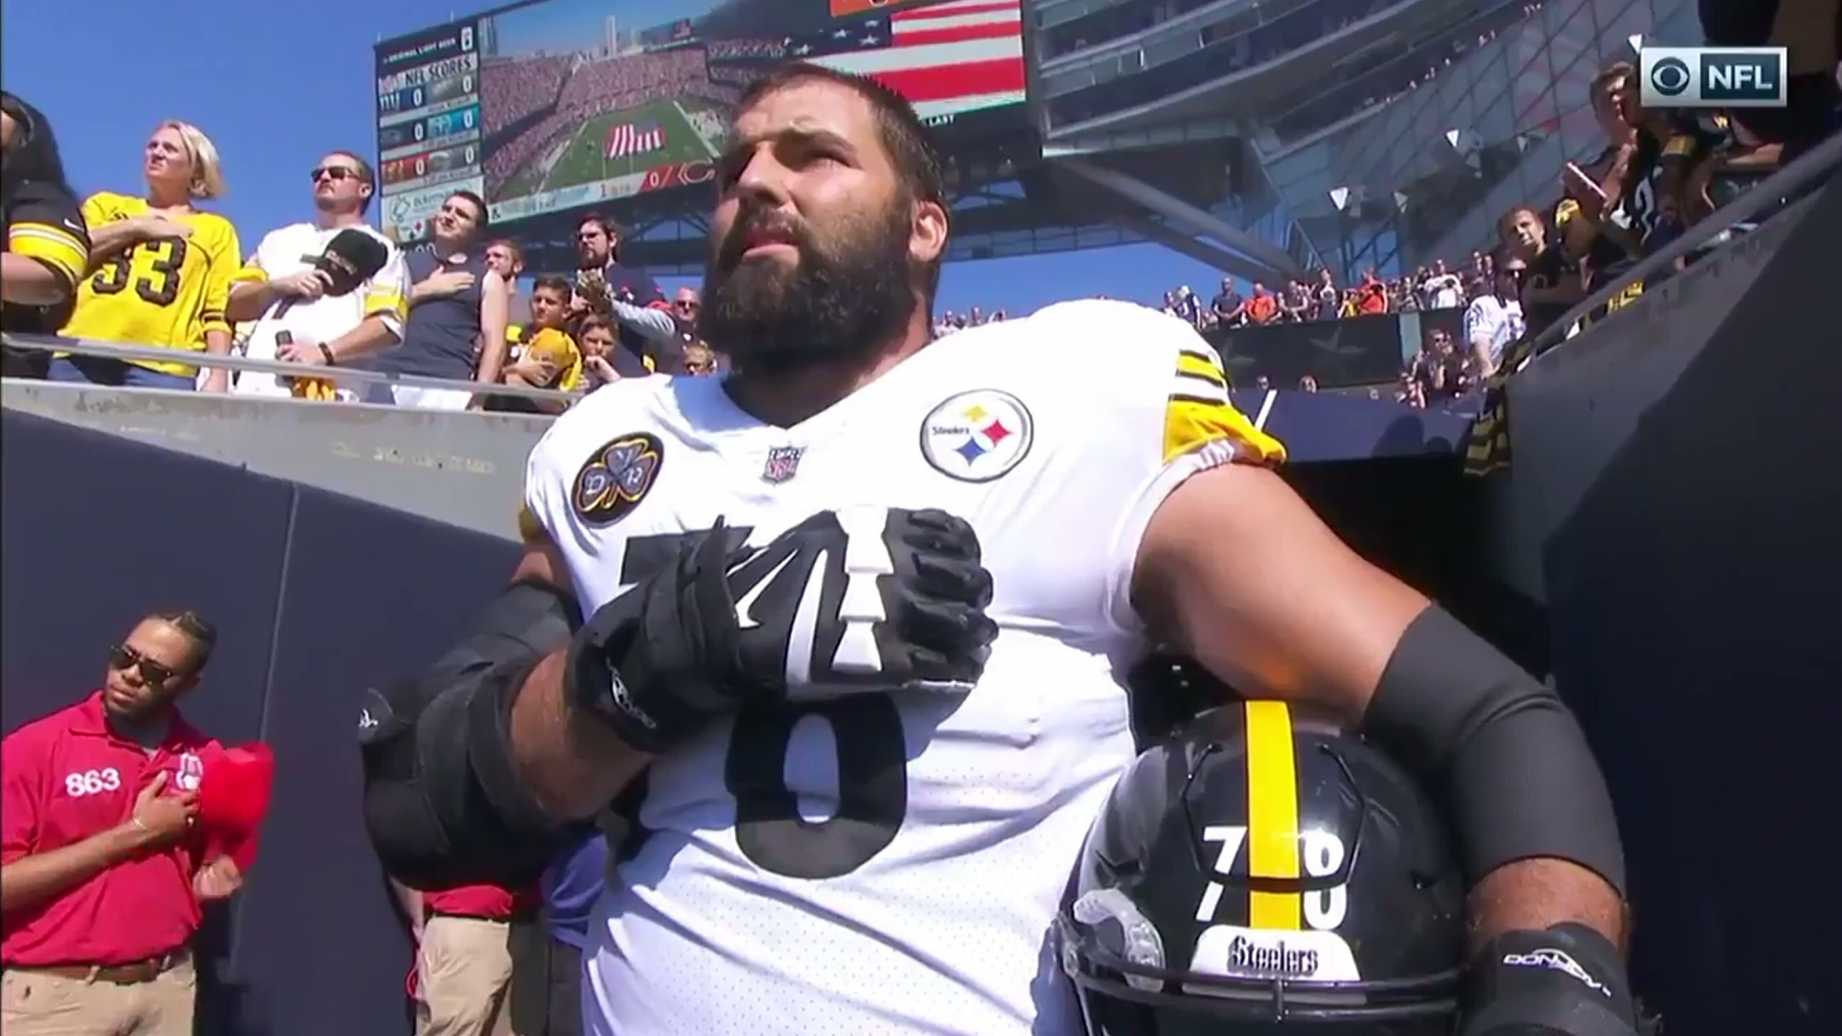 Former Army Ranger Alejandro Villanueva Shows The Steelers How To Be An American - VIDEO